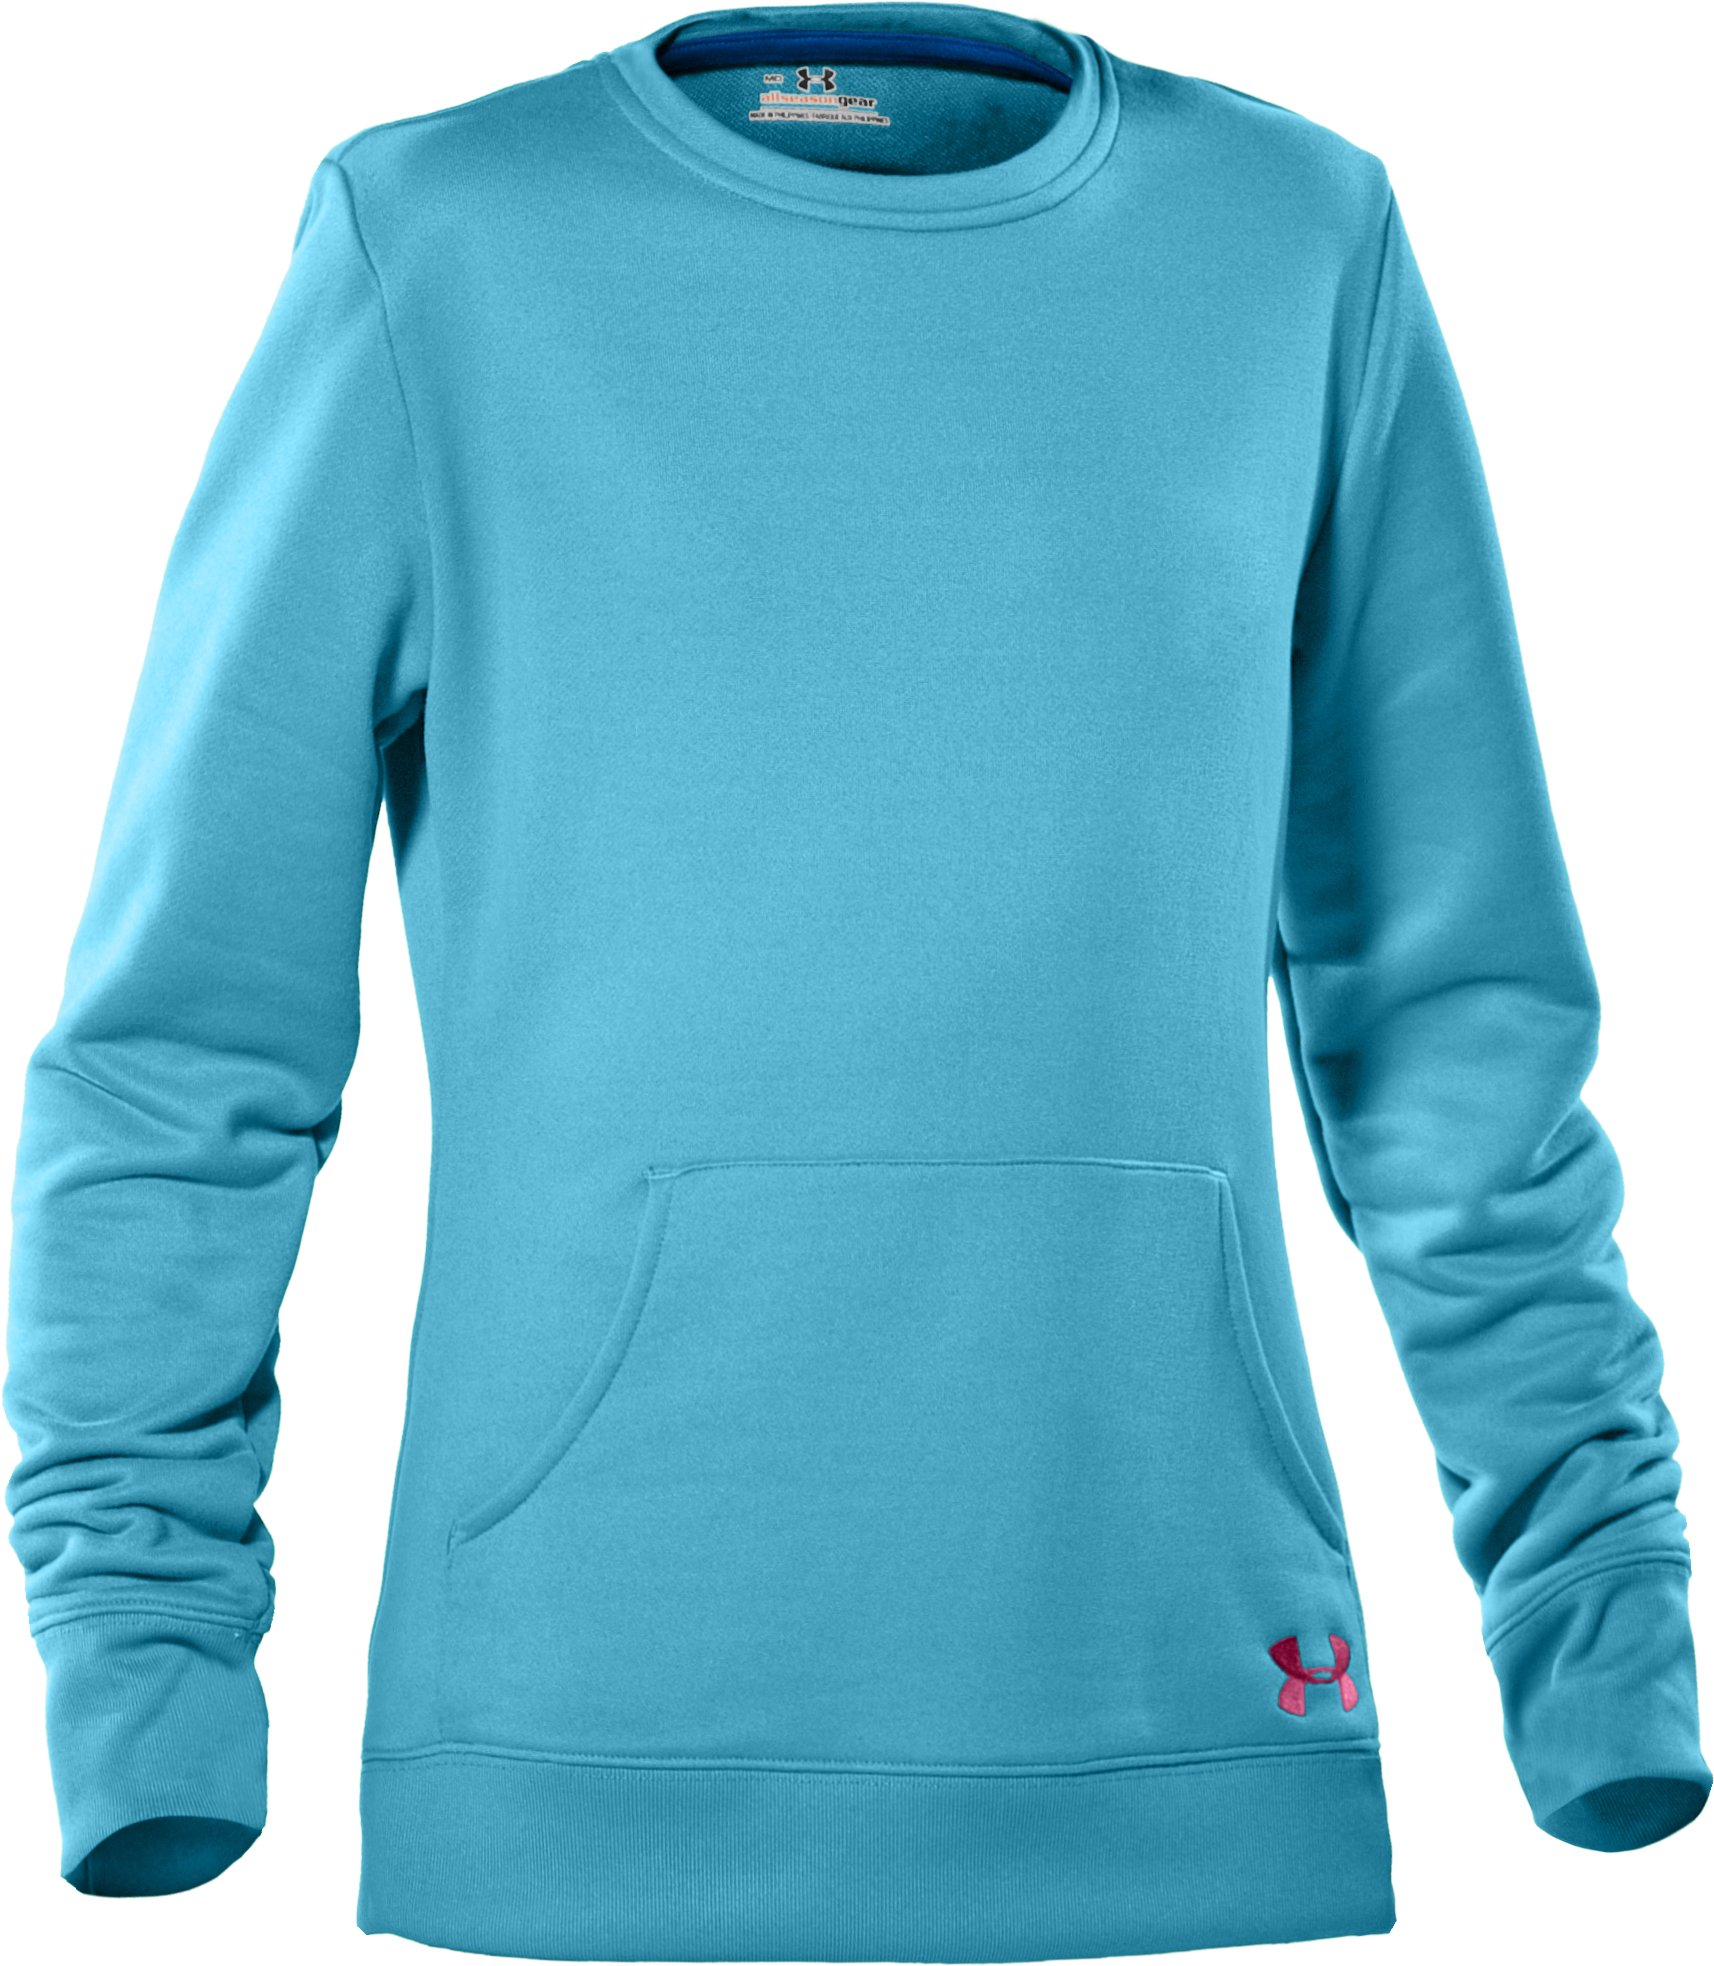 Girls' Long Sleeve French Terry Crew, Tobago, undefined